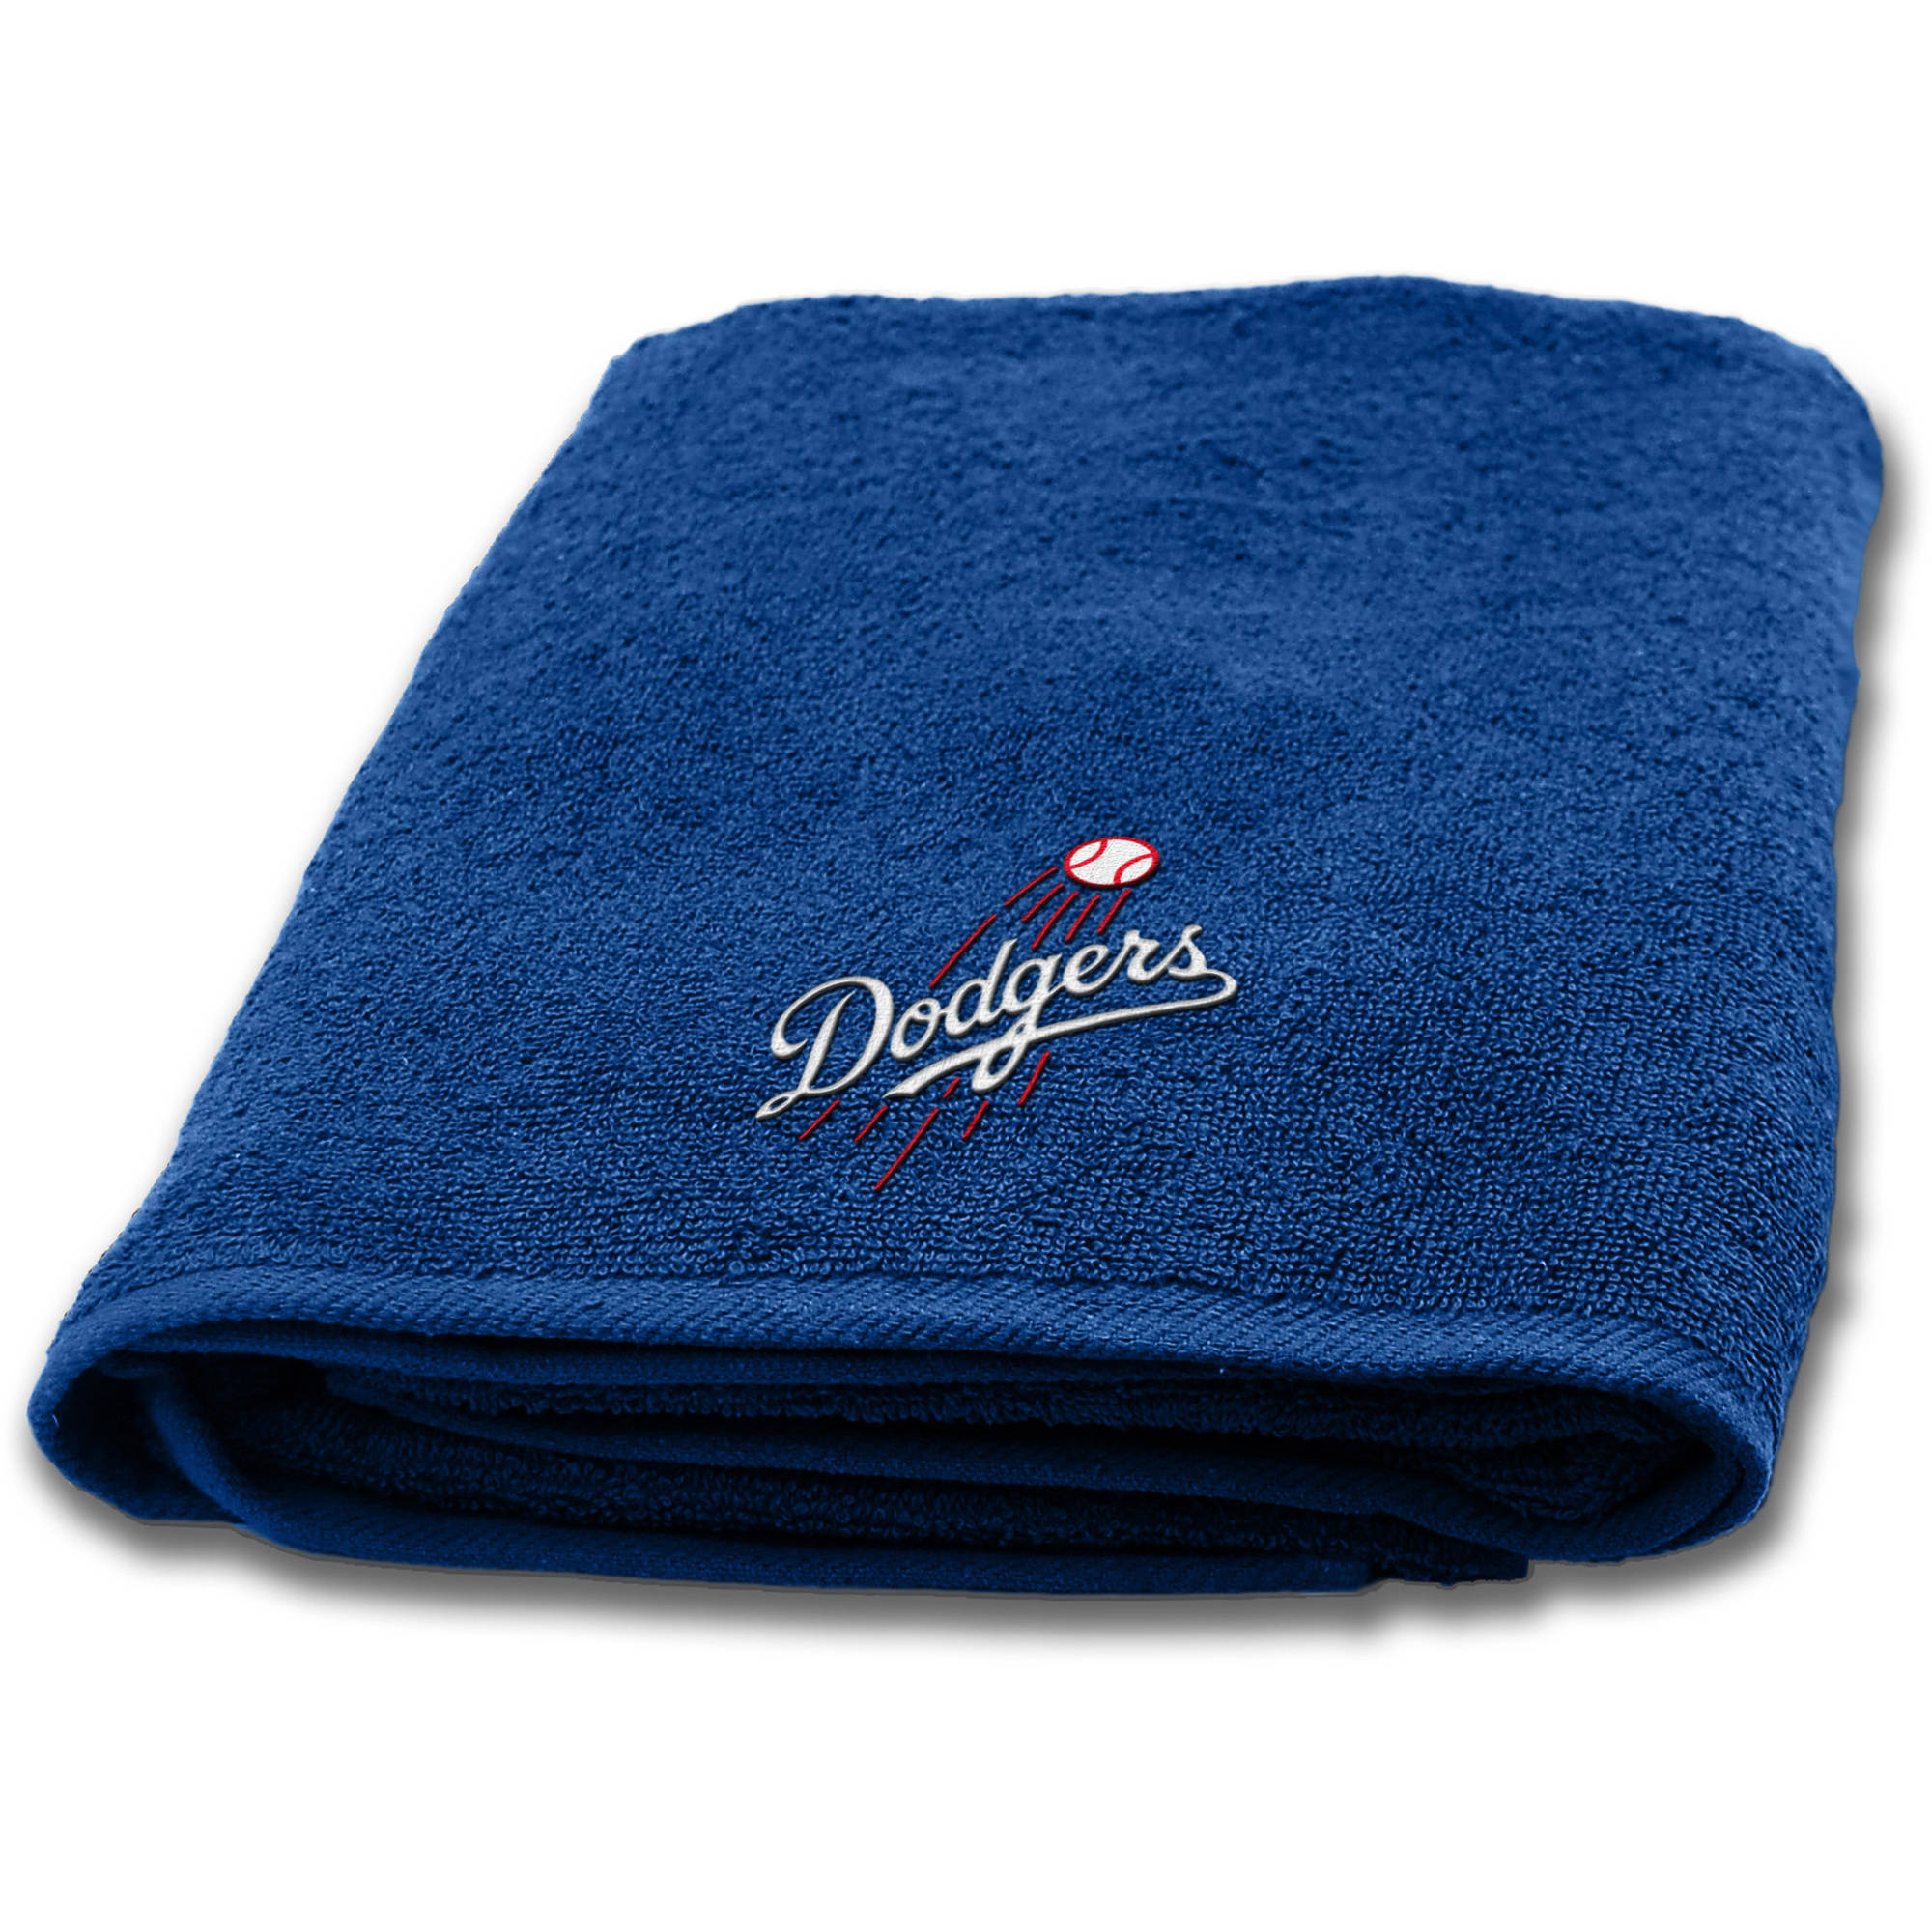 "MLB Los Angeles Dodgers 25""x50"" Applique Bath Towel"